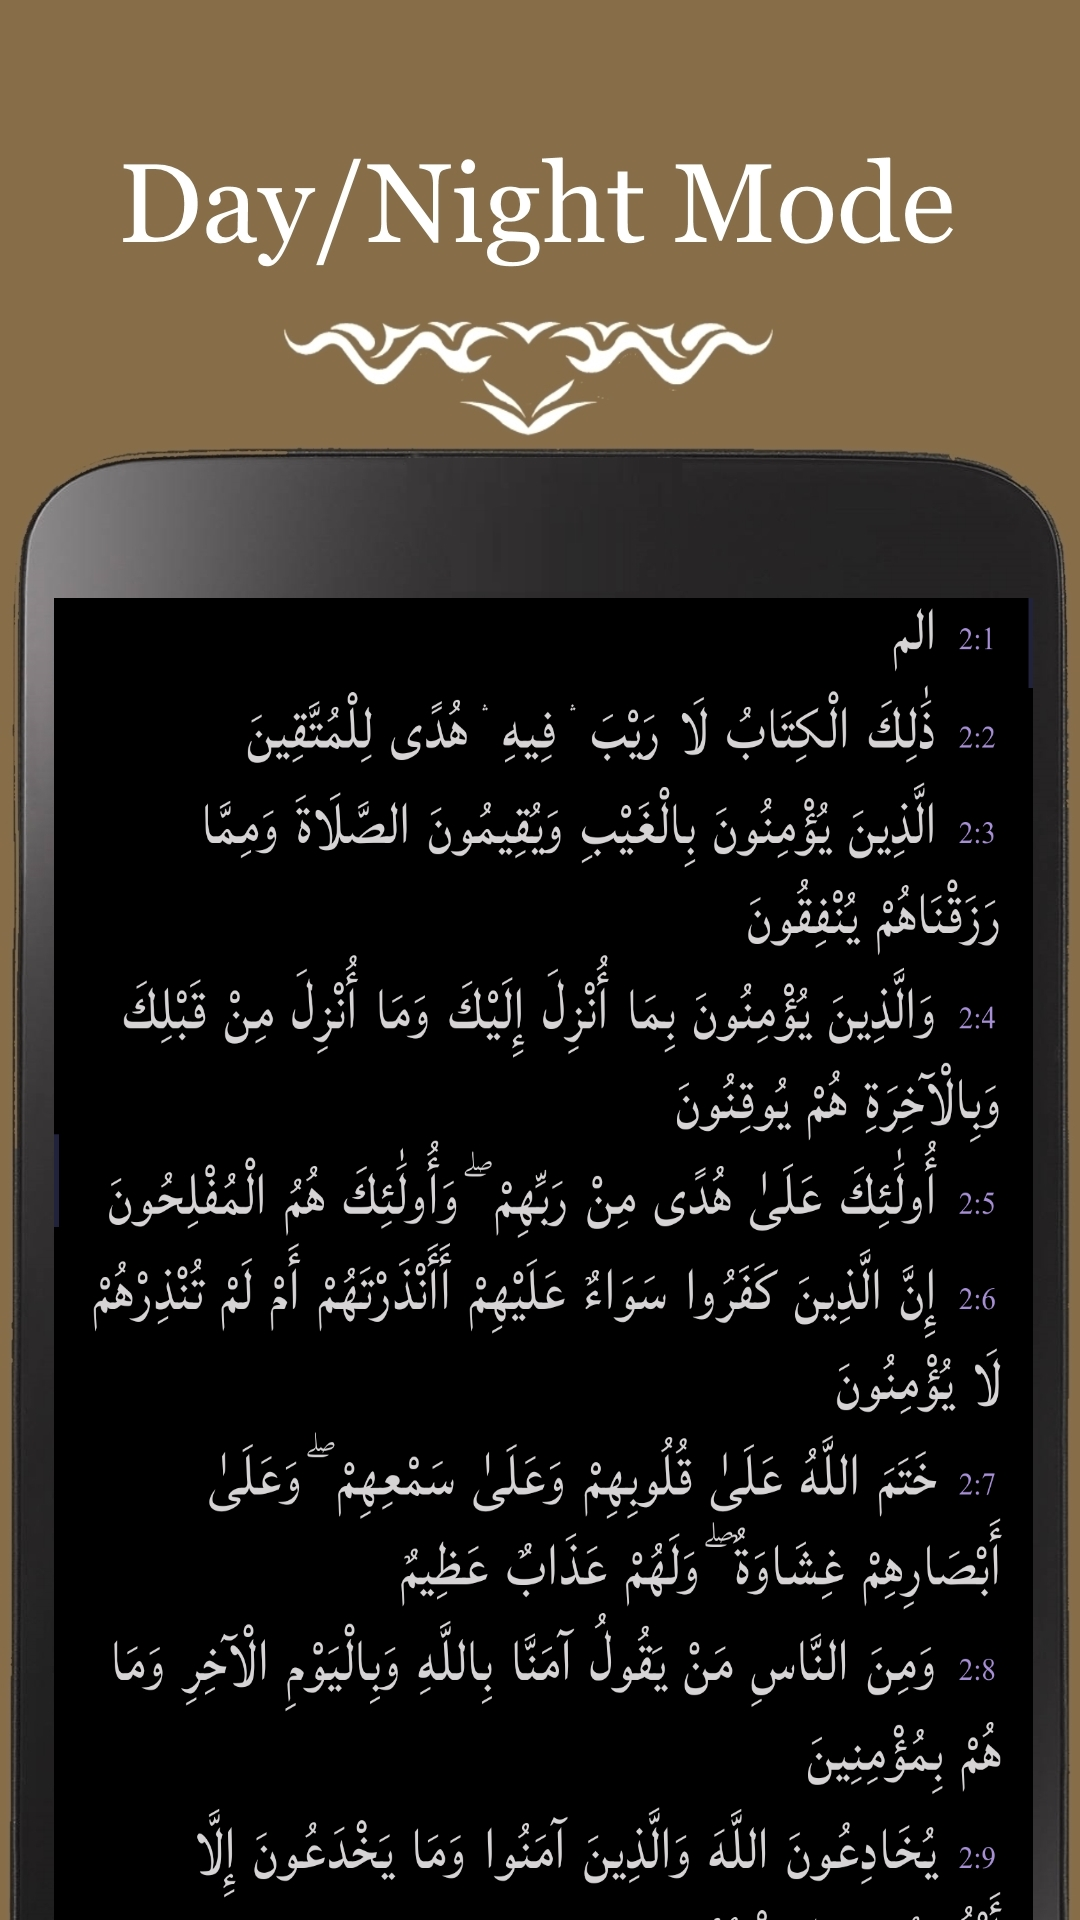 Android's Free Quran (Koran) Book in Arabic (Easy-to-use Quran App with  Auto-Scrolling, Notepad, Highlight, Bookmark, 7 Arabic Fonts, Offline &  Many